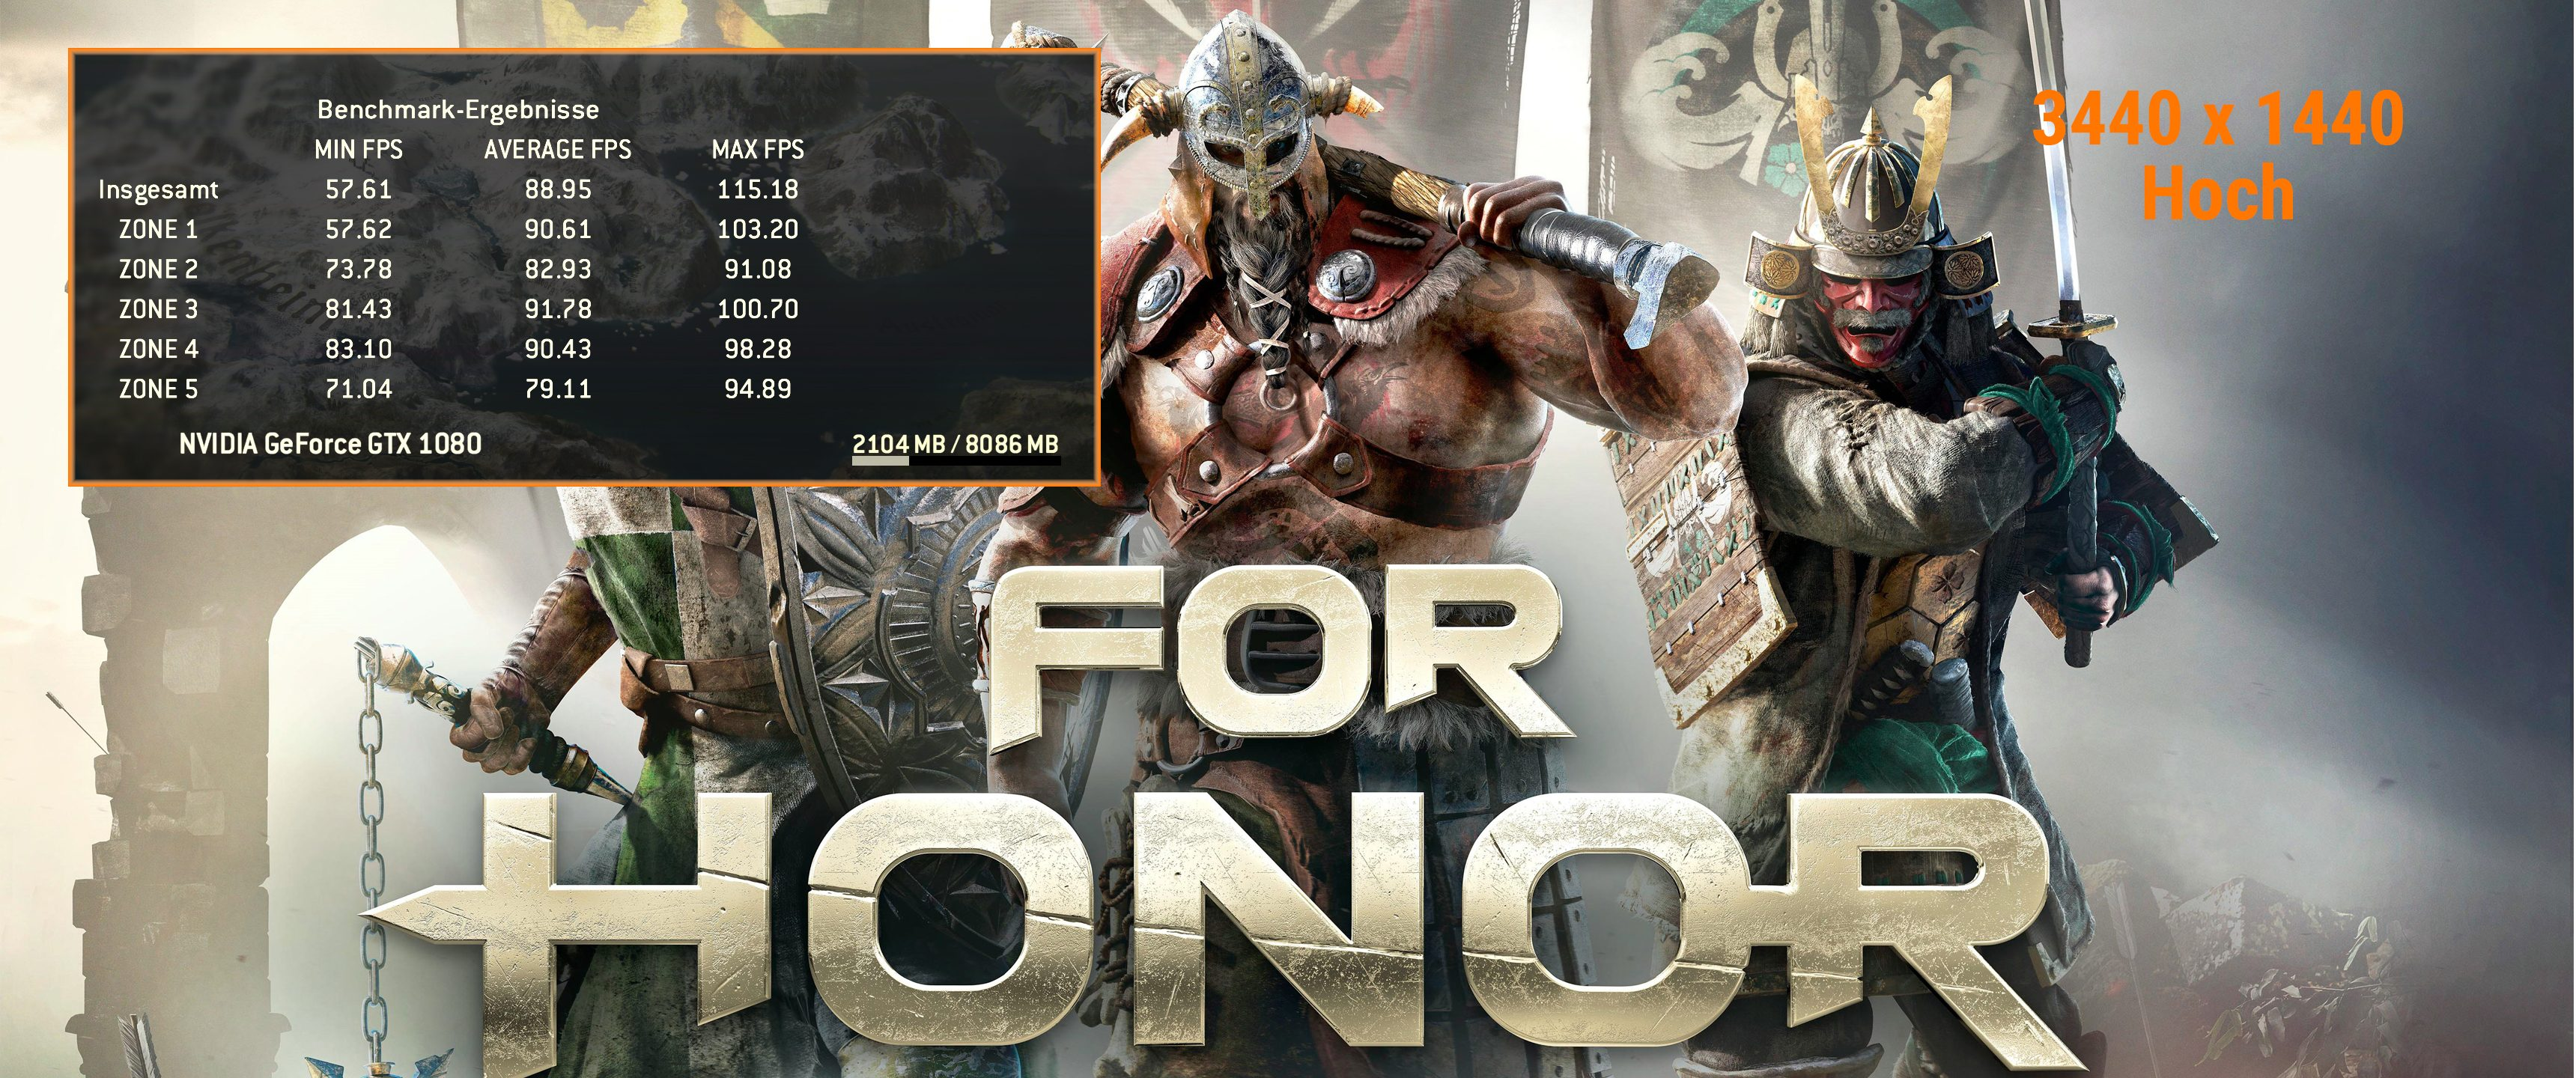 Game-9-3440-forhonor-hoch